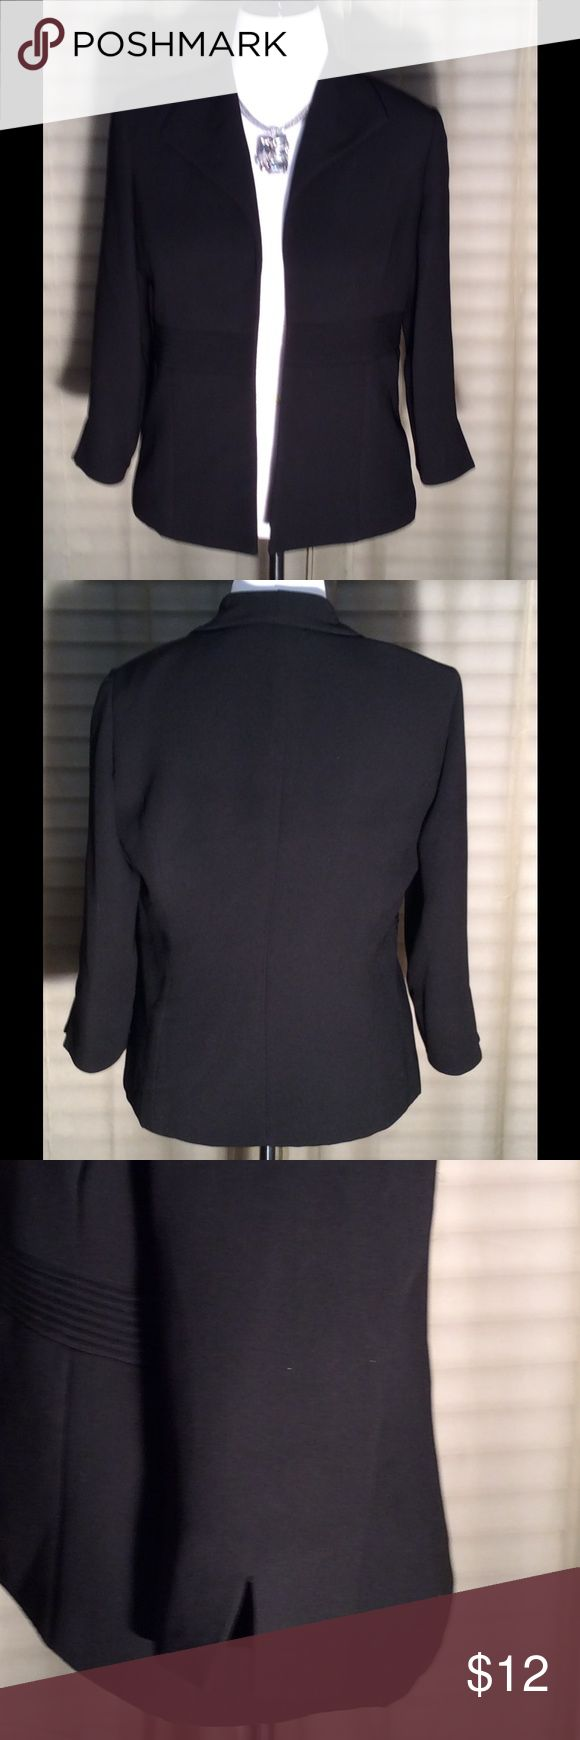 💐💄💐 LADIES BLACK BLAZER 💐💄💐 Ladies black blazer, has shoulder pads and small v's in the sleeve. Great condition. Jessica Howard Jackets & Coats Blazers